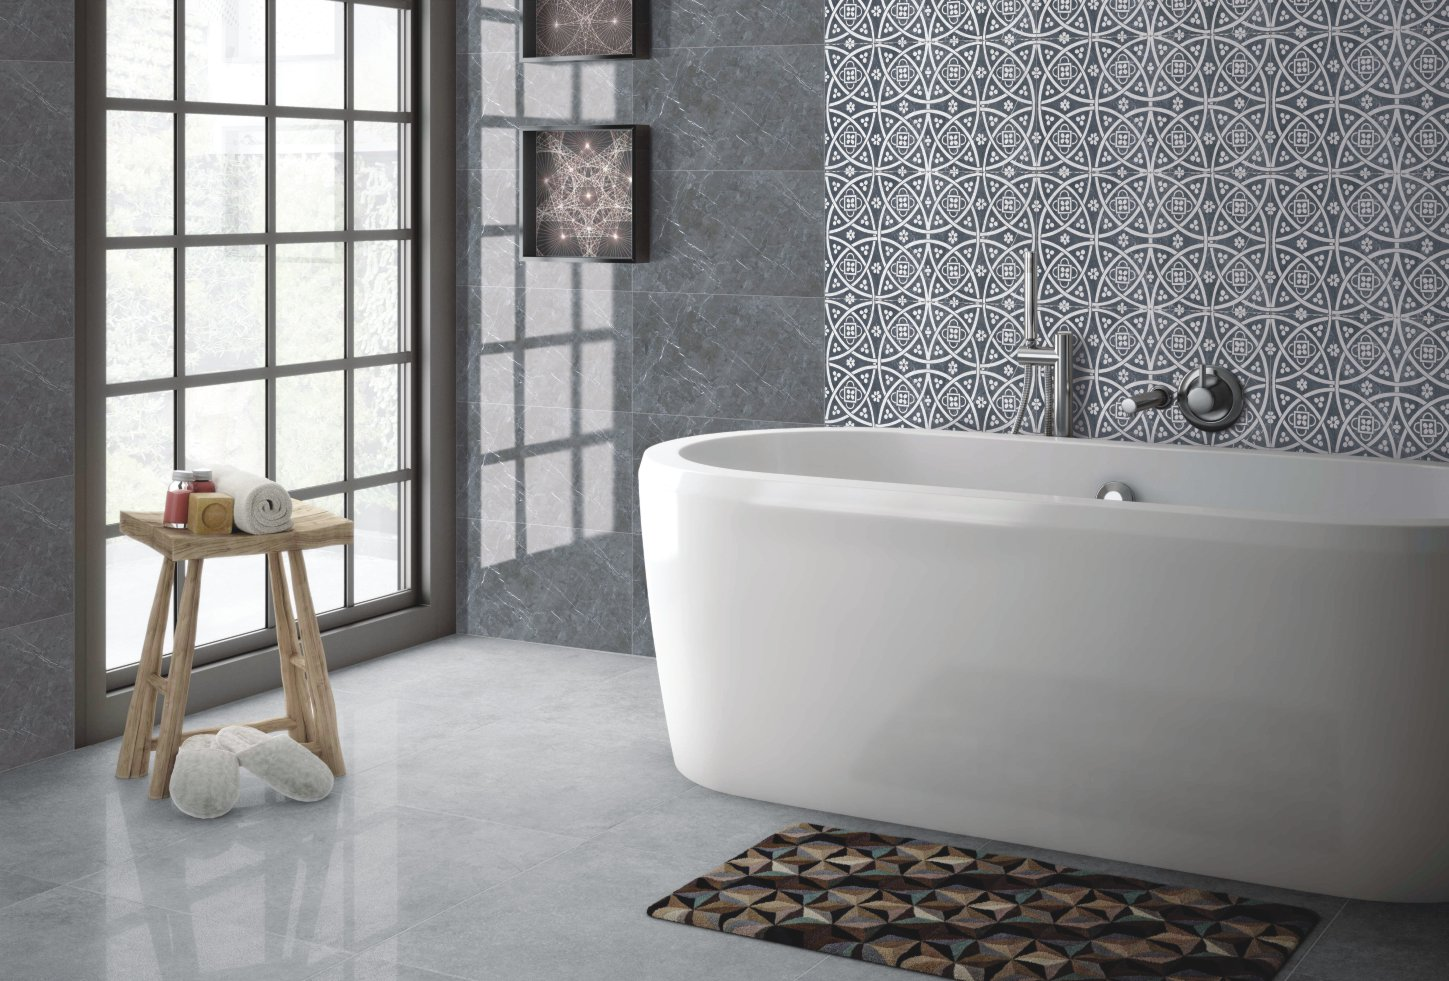 Extra Large Format Tiles for Walls and Floors | Porcelain Tiles ...